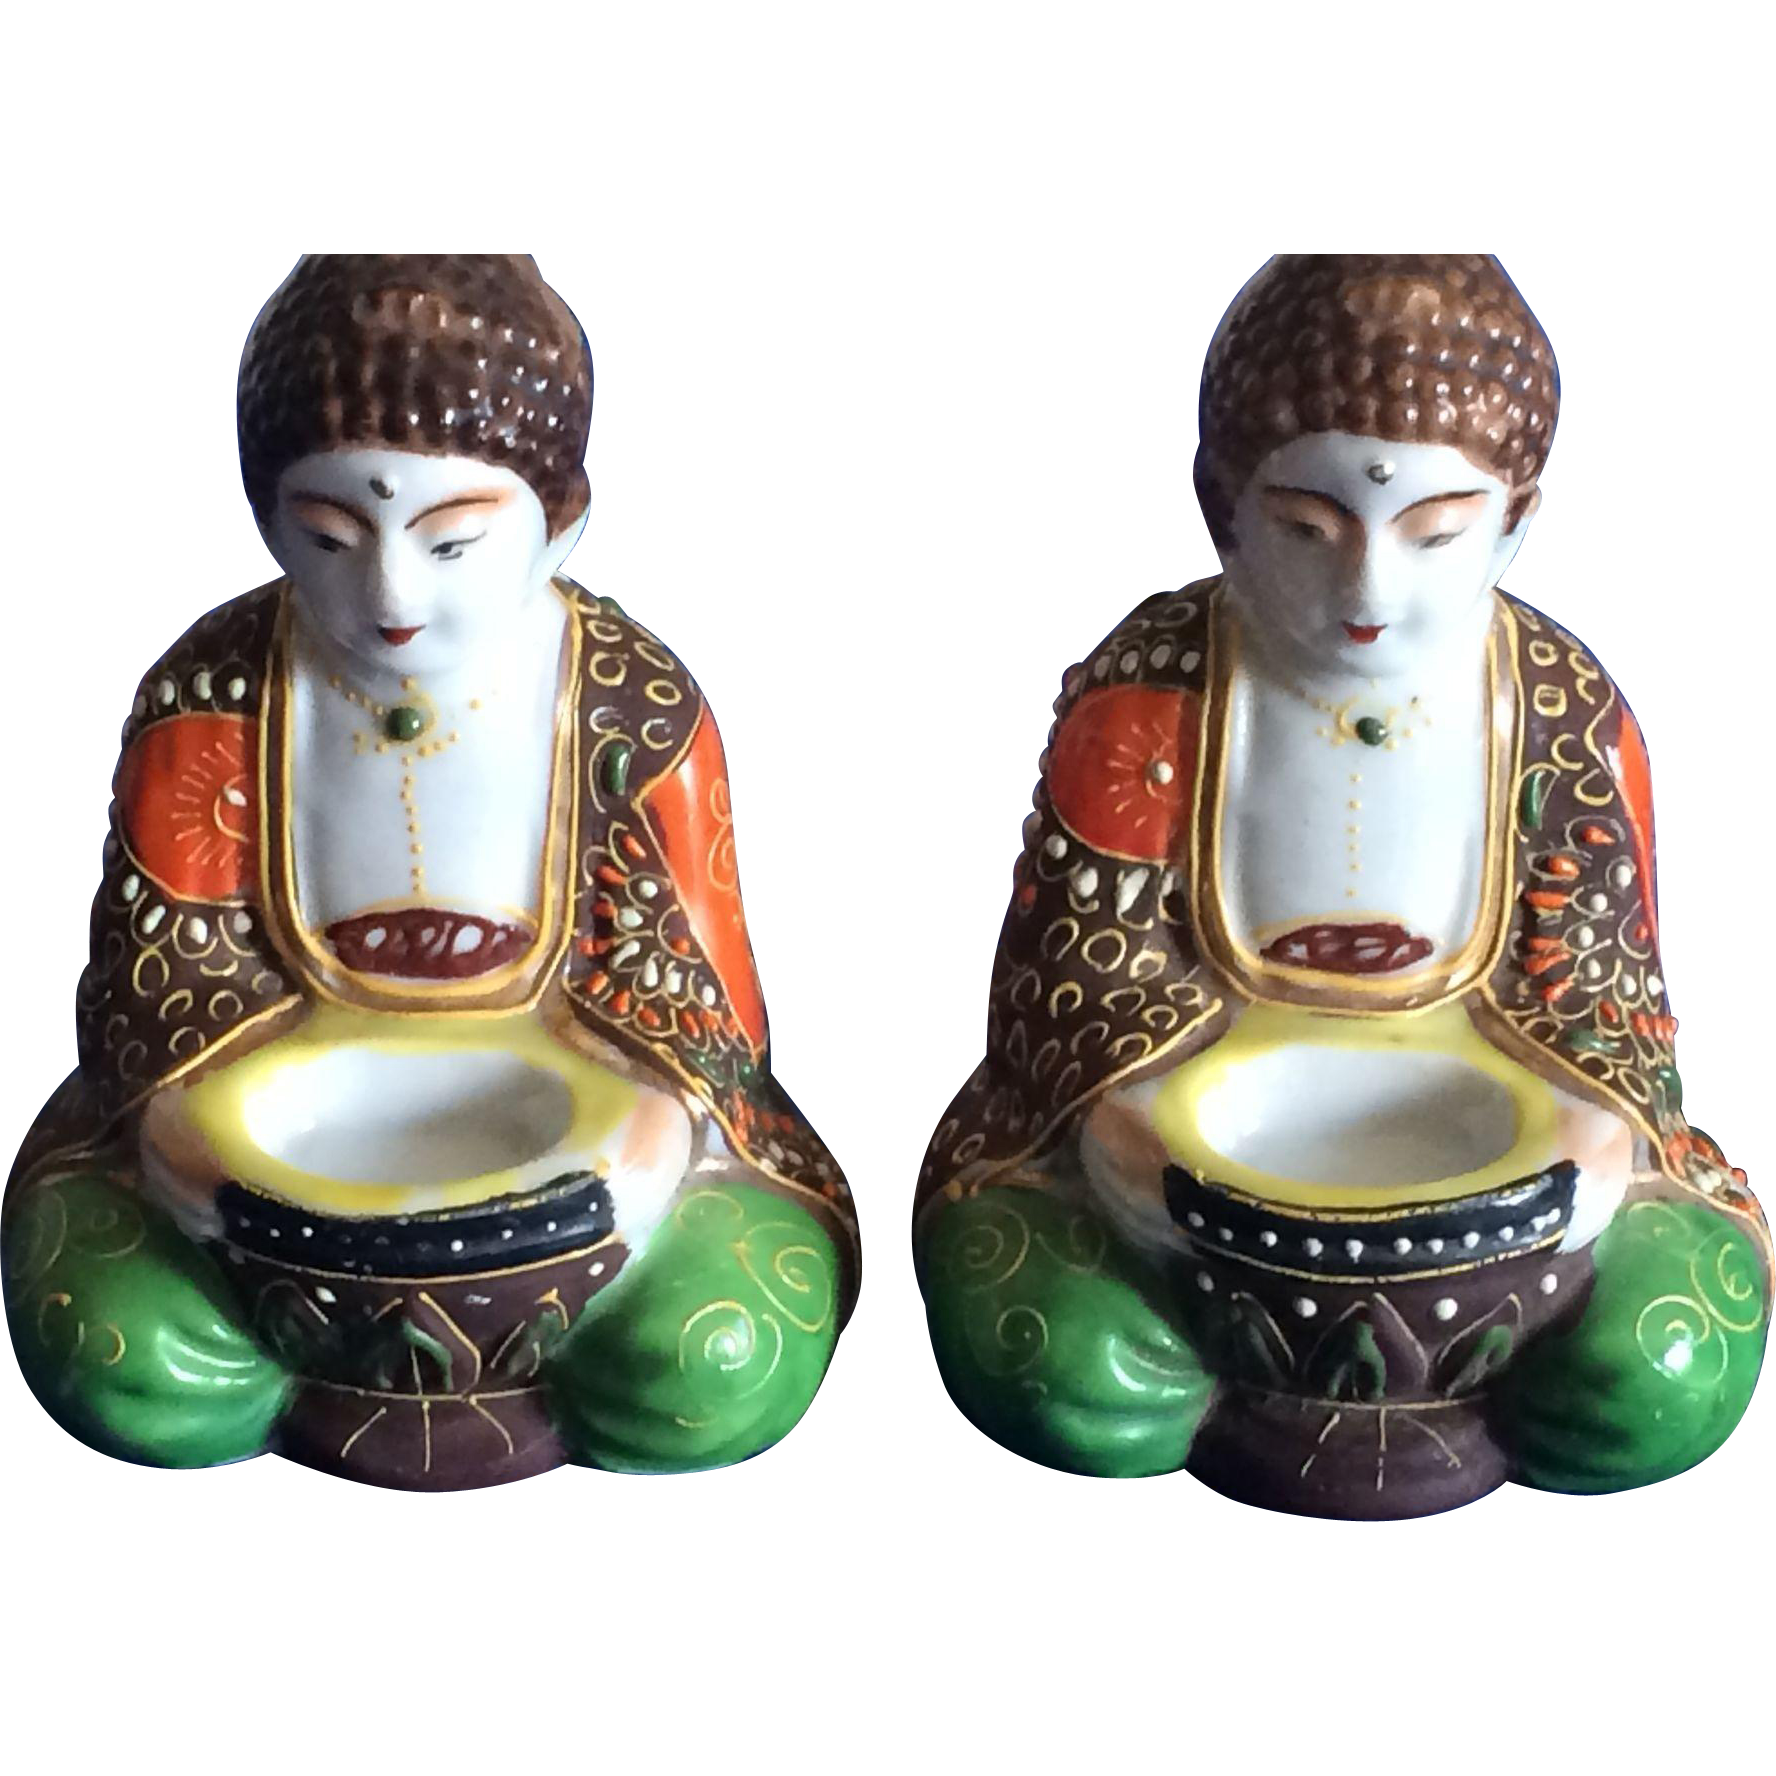 Pair of Japanese moriage miniature Buddhas